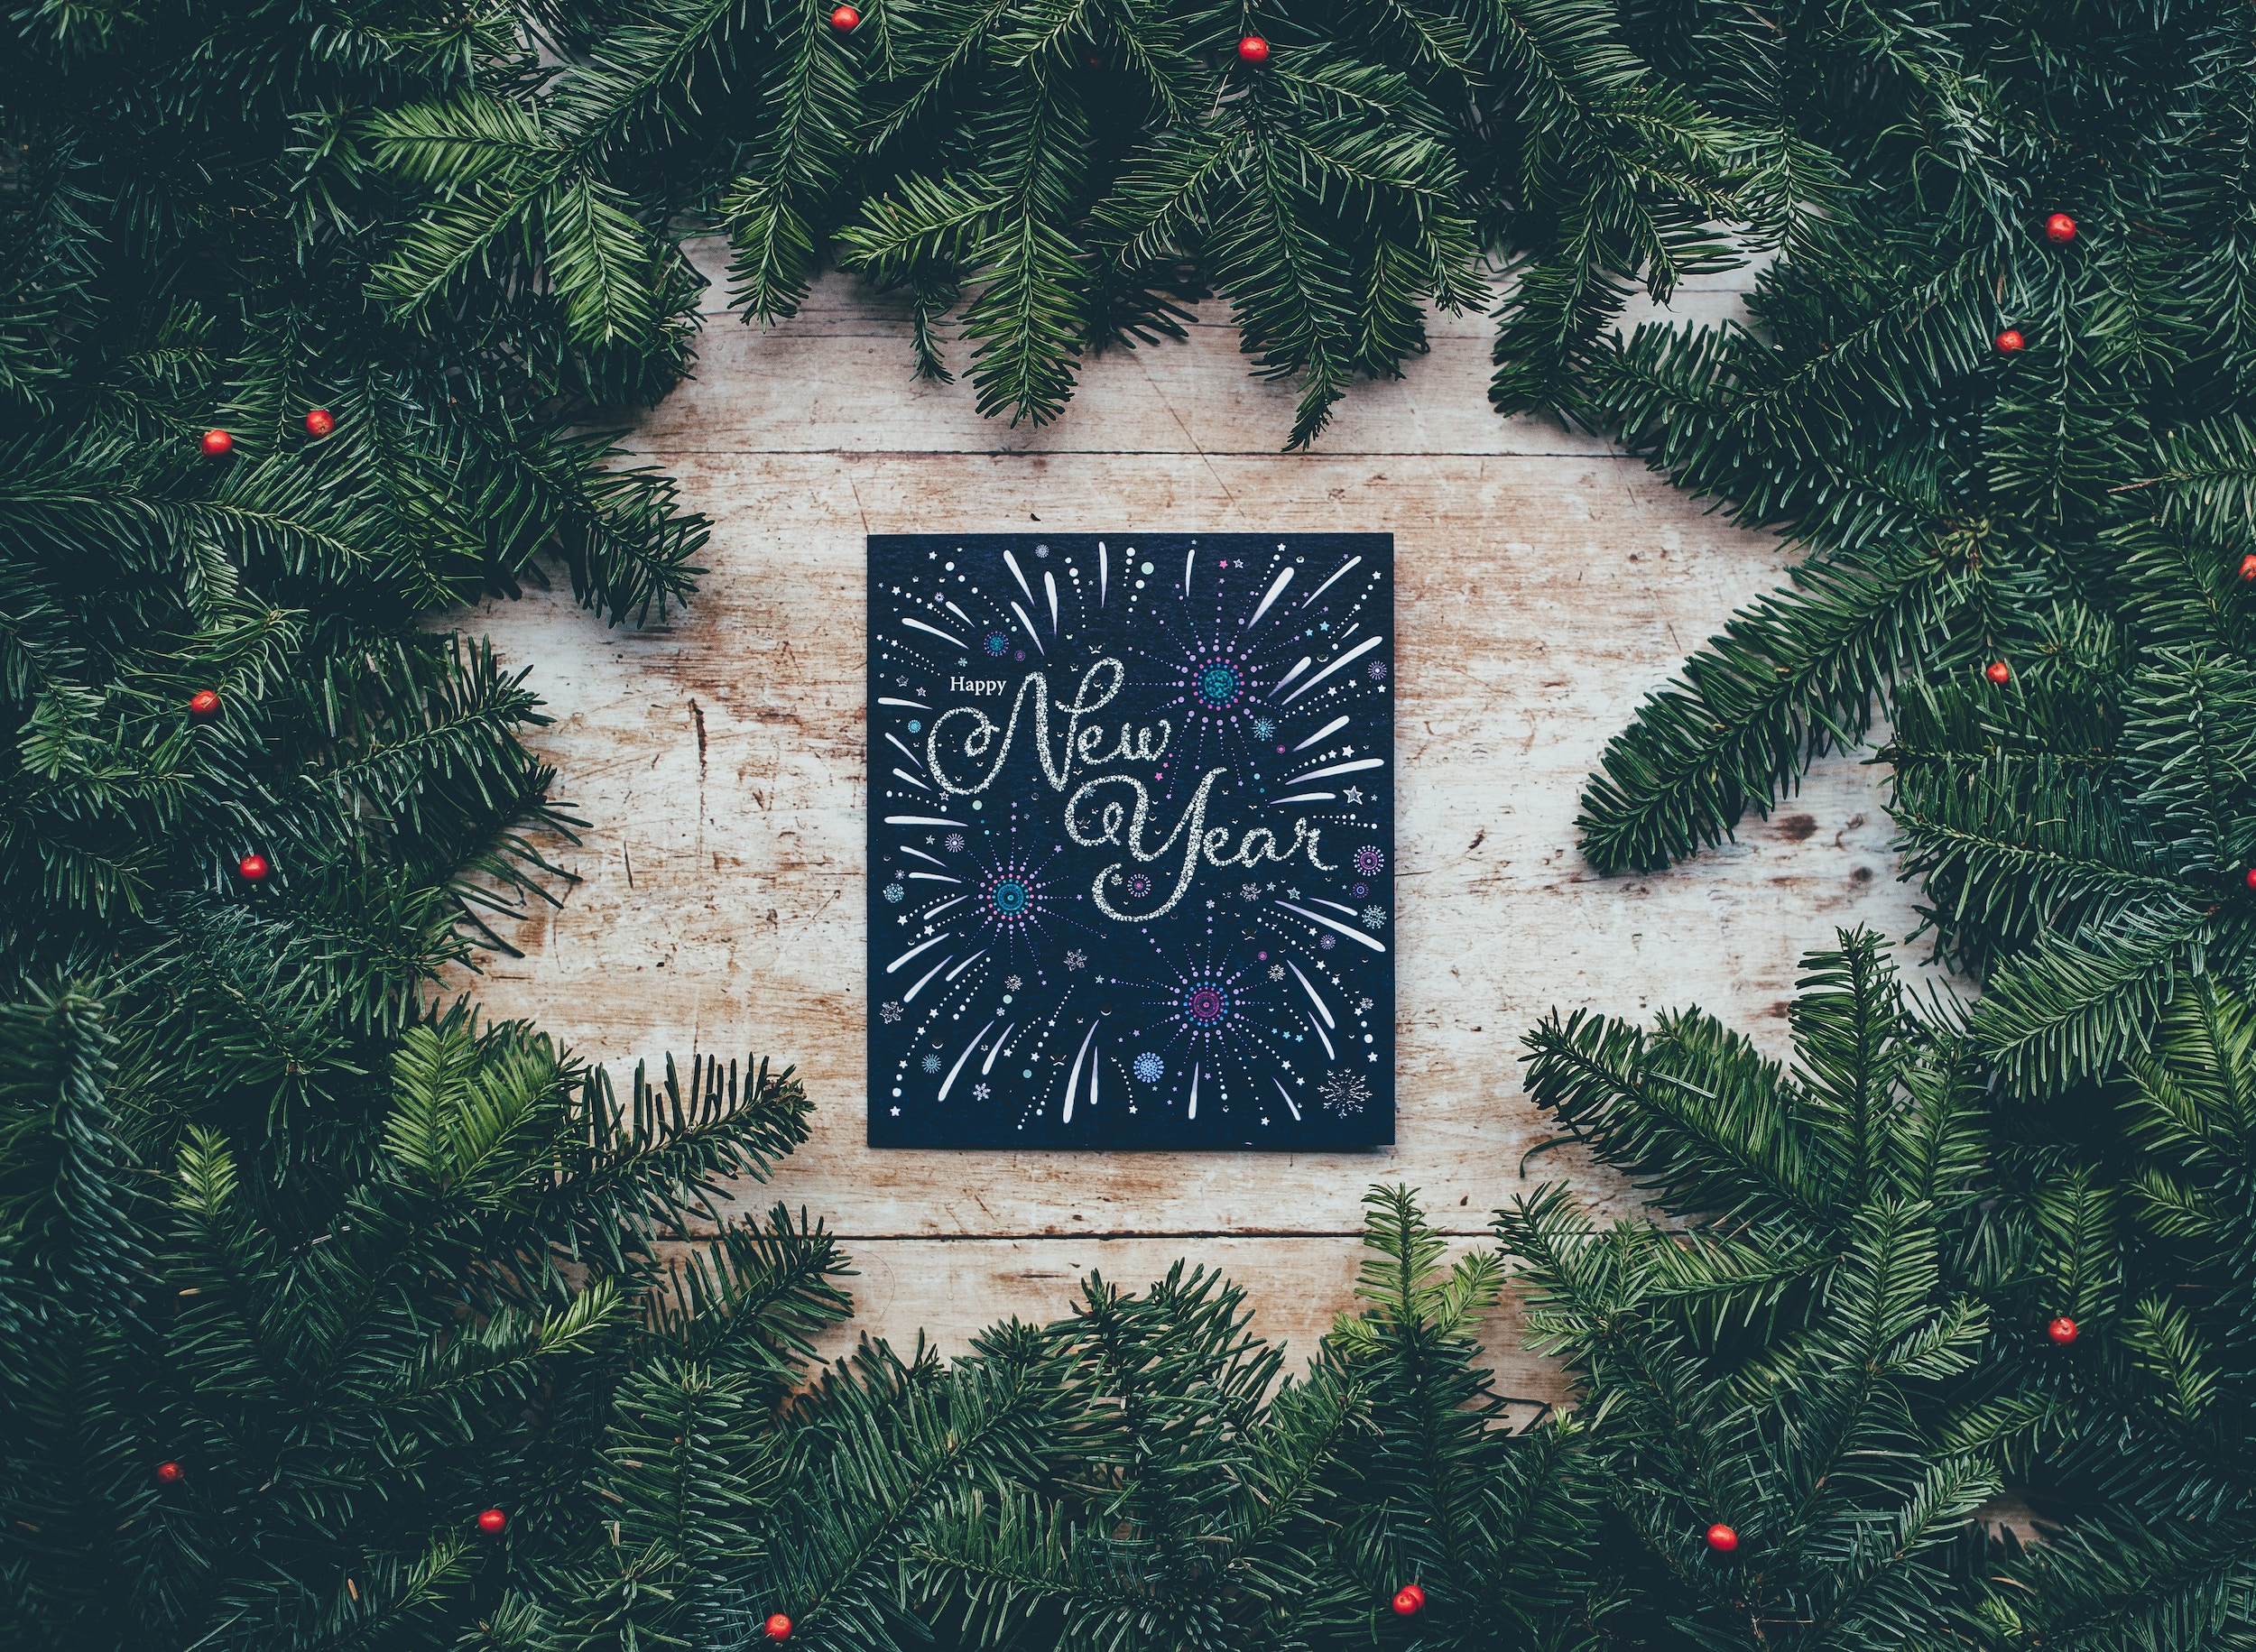 Happy new year sign surrounded by pine tree branches